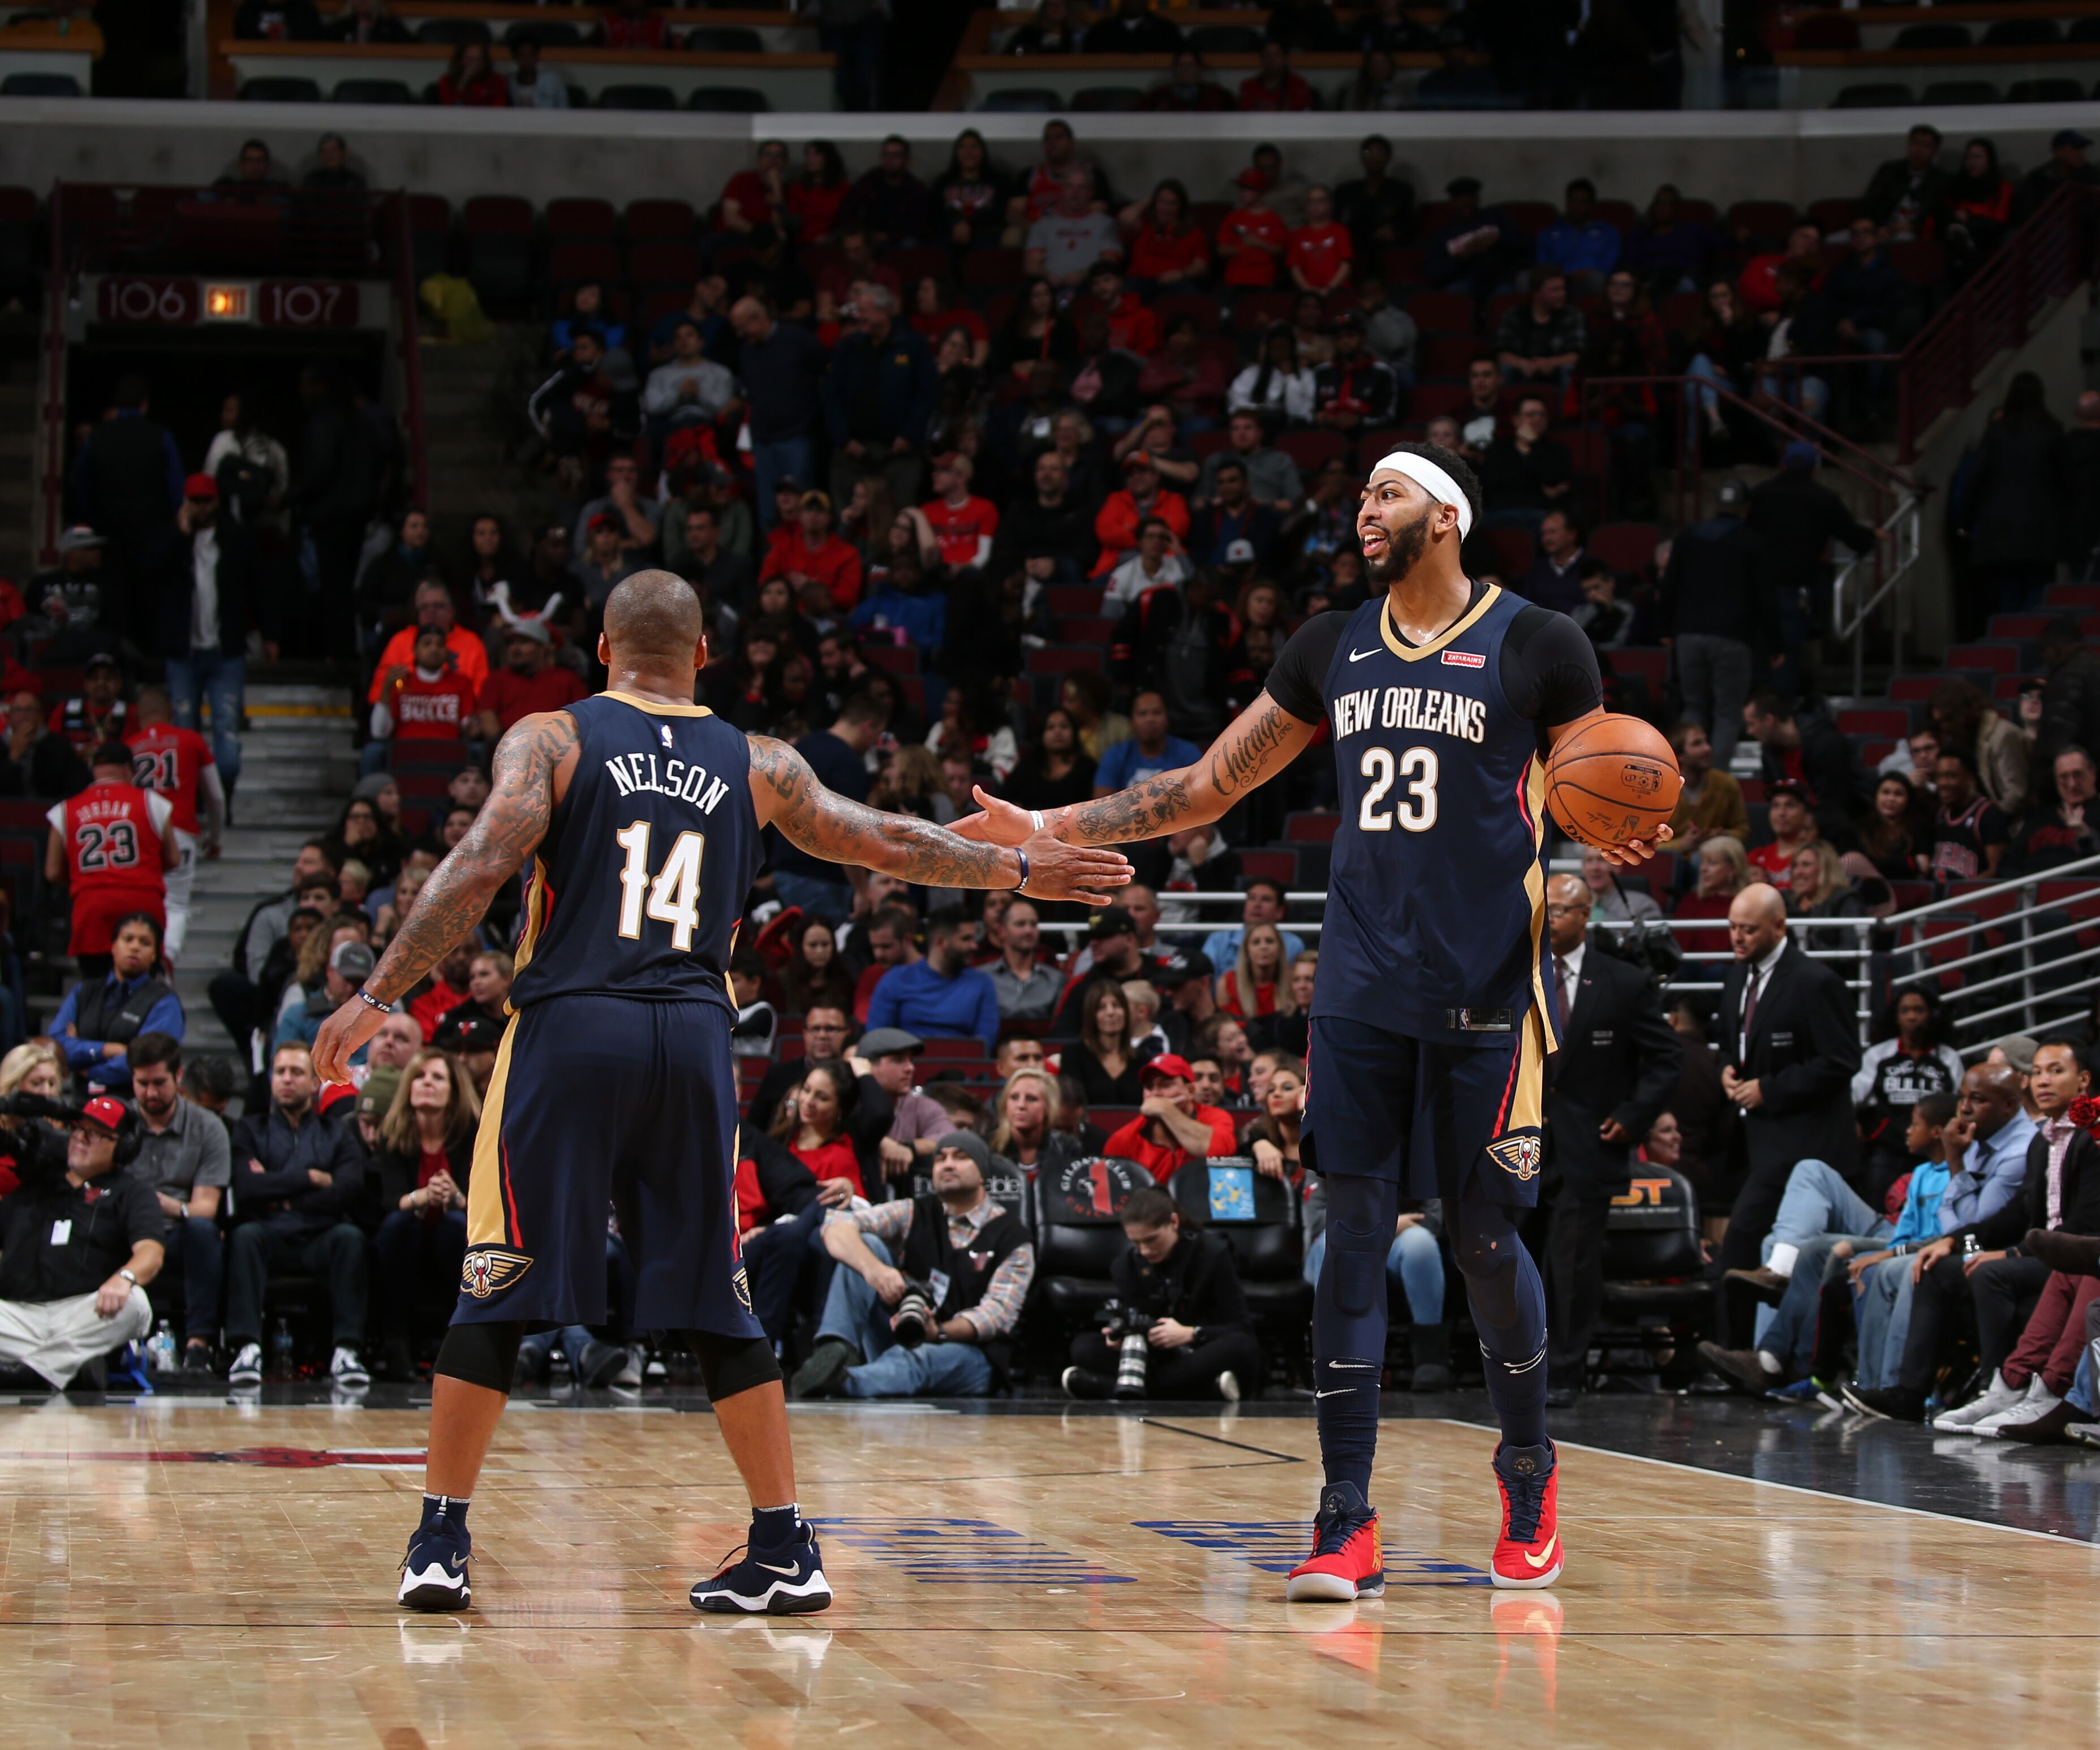 Jameer Nelson earning minutes even with Rajon Rondo returning